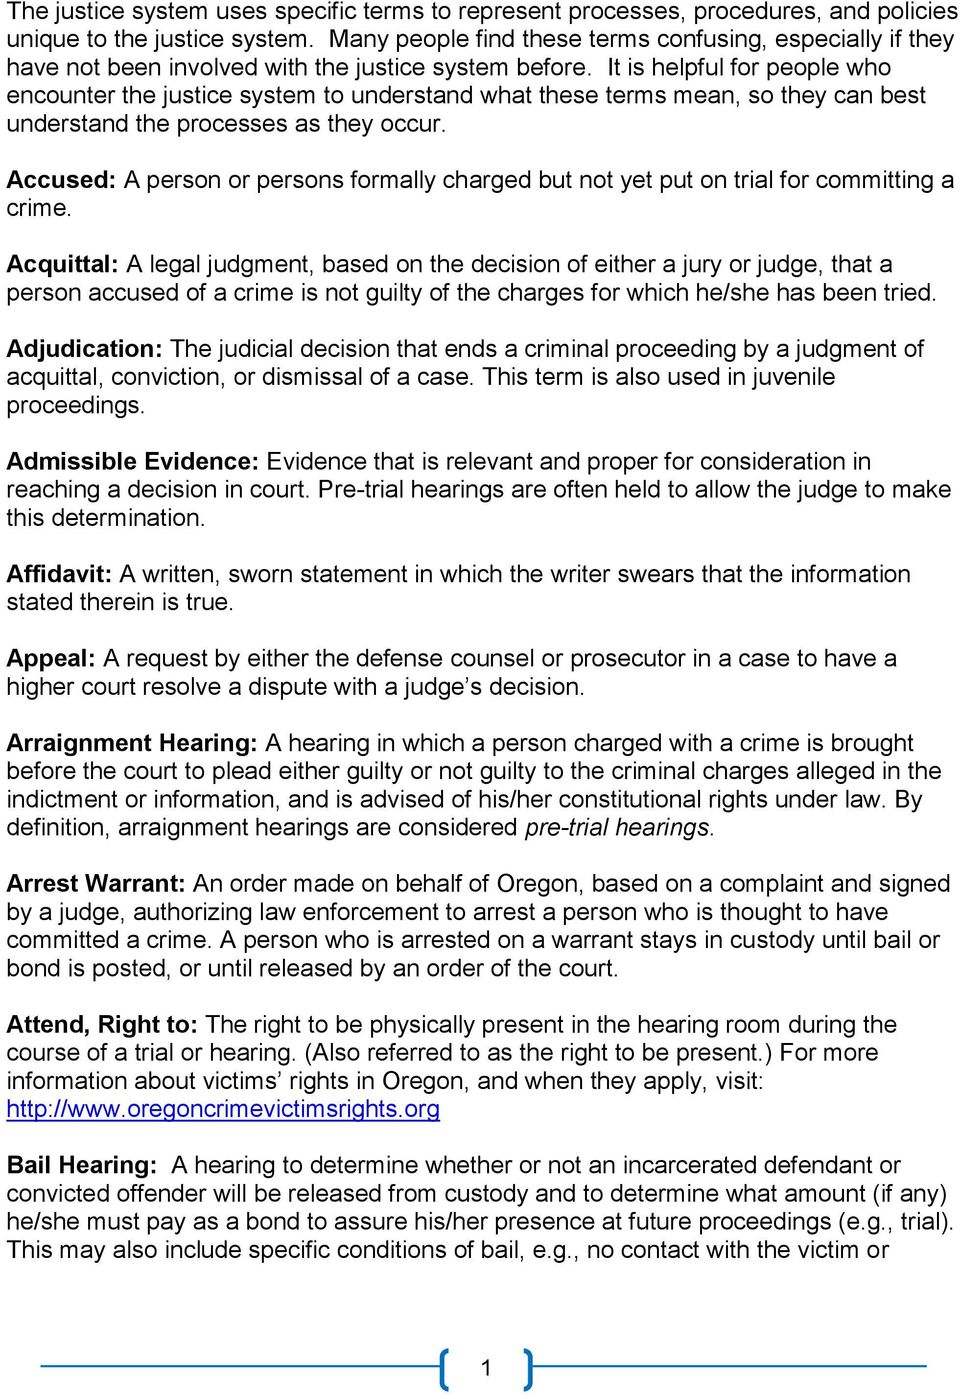 It is helpful for people who encounter the justice system to understand what these terms mean, so they can best understand the processes as they occur.